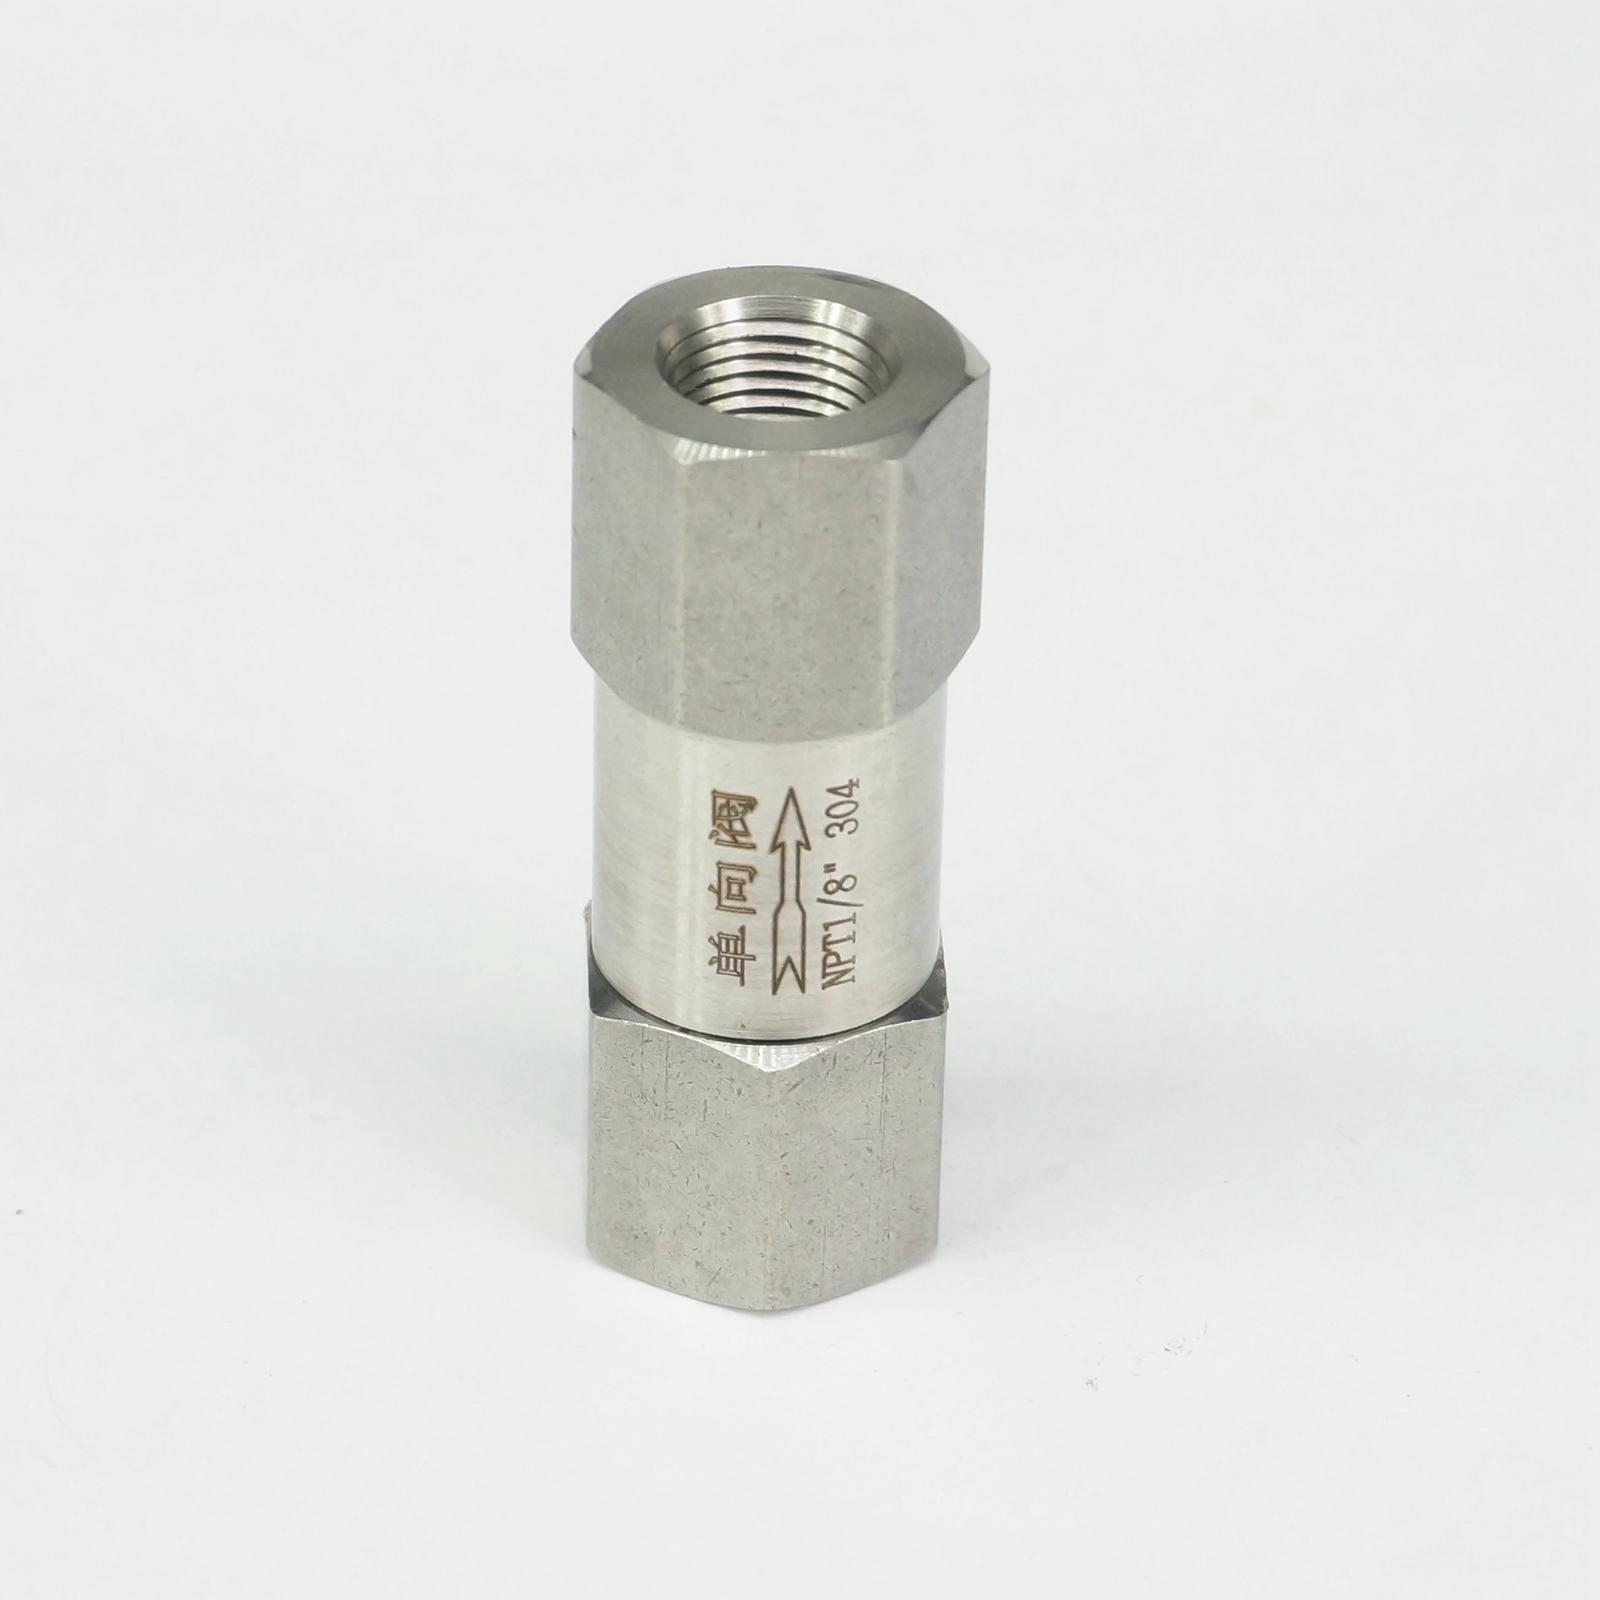 1/8 NPT Female Check One Way Valve 304 Stainless Steel Water Gas Oil Non-return